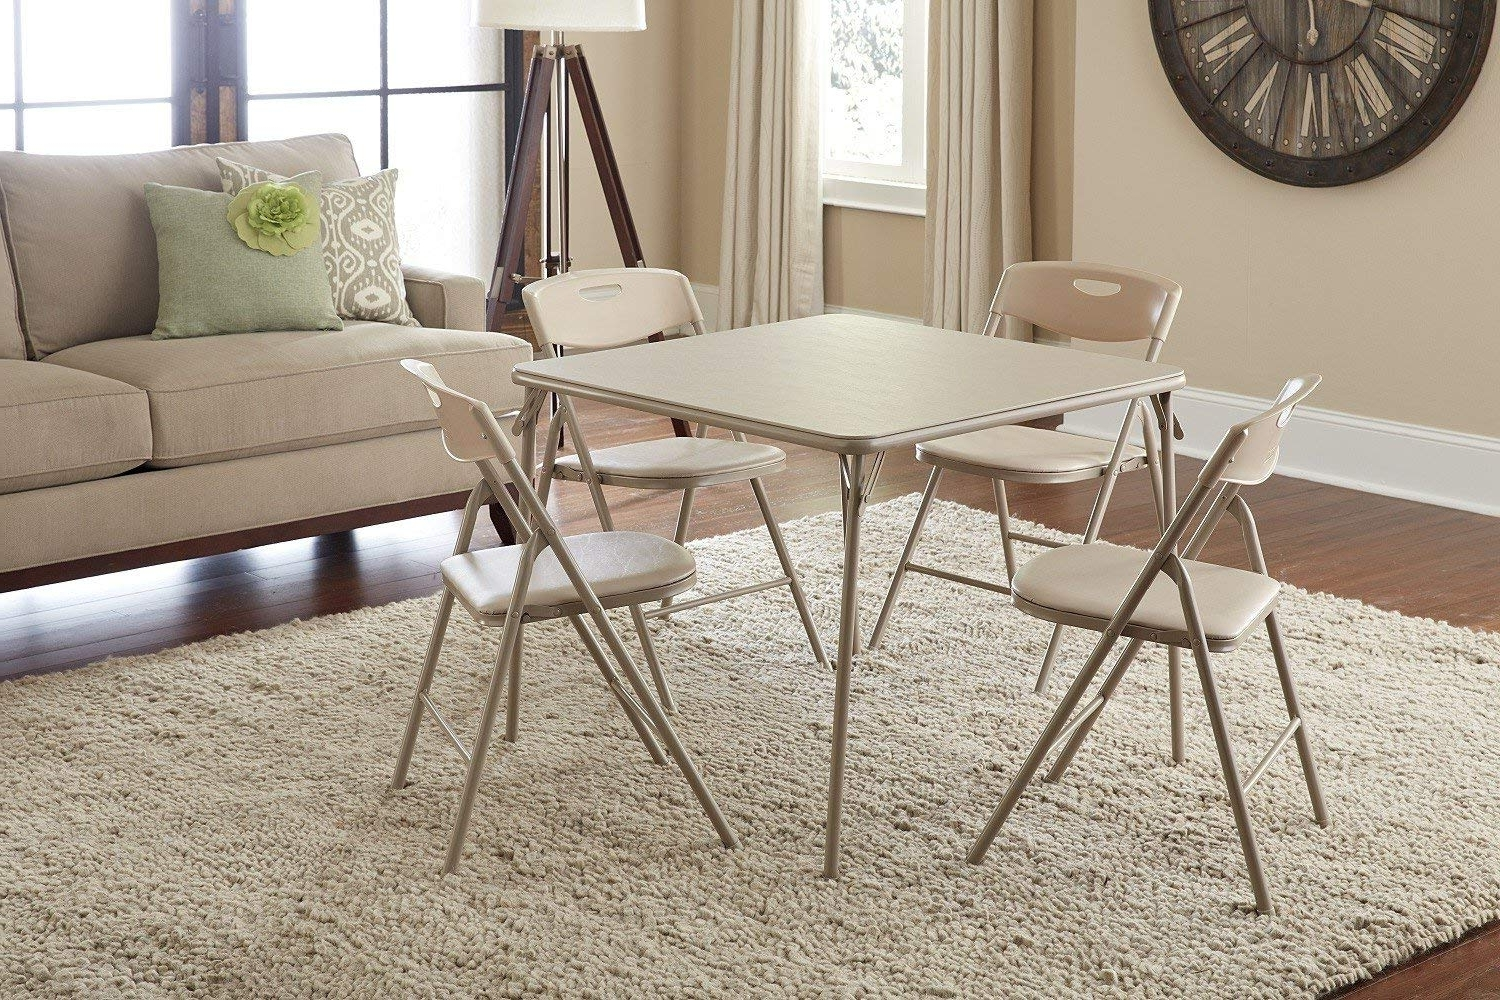 Folding Dining Table And Chairs Sets With Newest Amazon: Cosco 5 Piece Folding Table And Chair Set, Antique Linen (View 16 of 25)